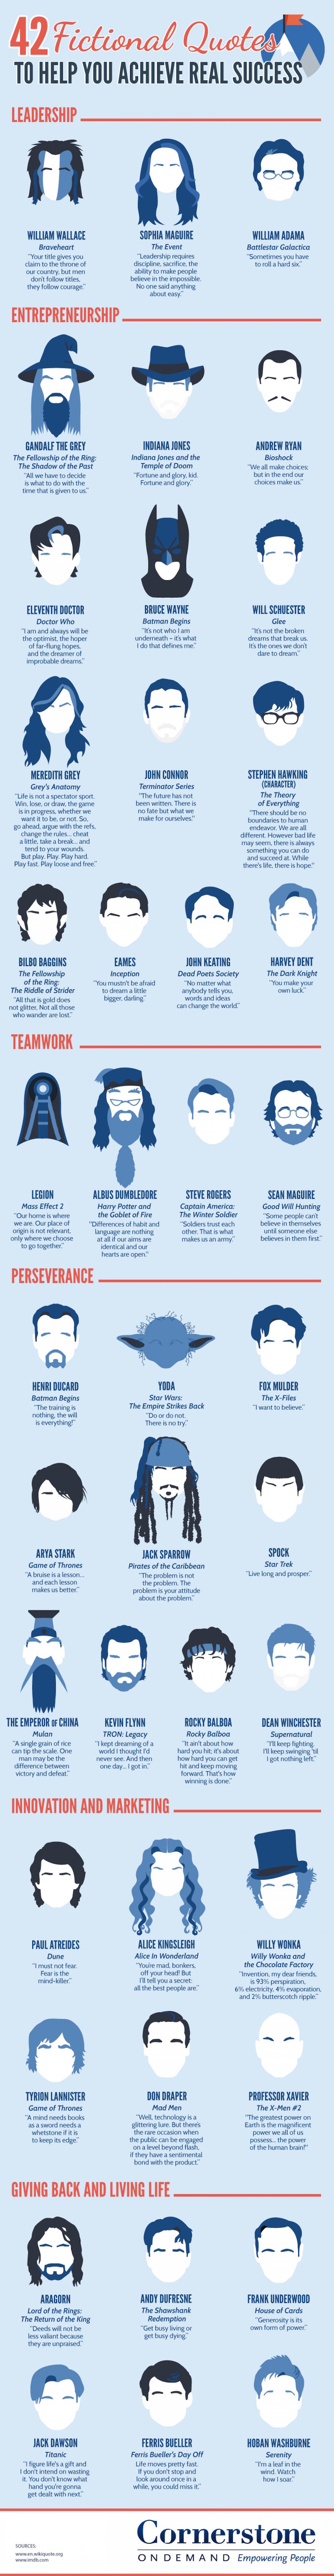 Inspiring quotes for success from books comics and movies #infographic